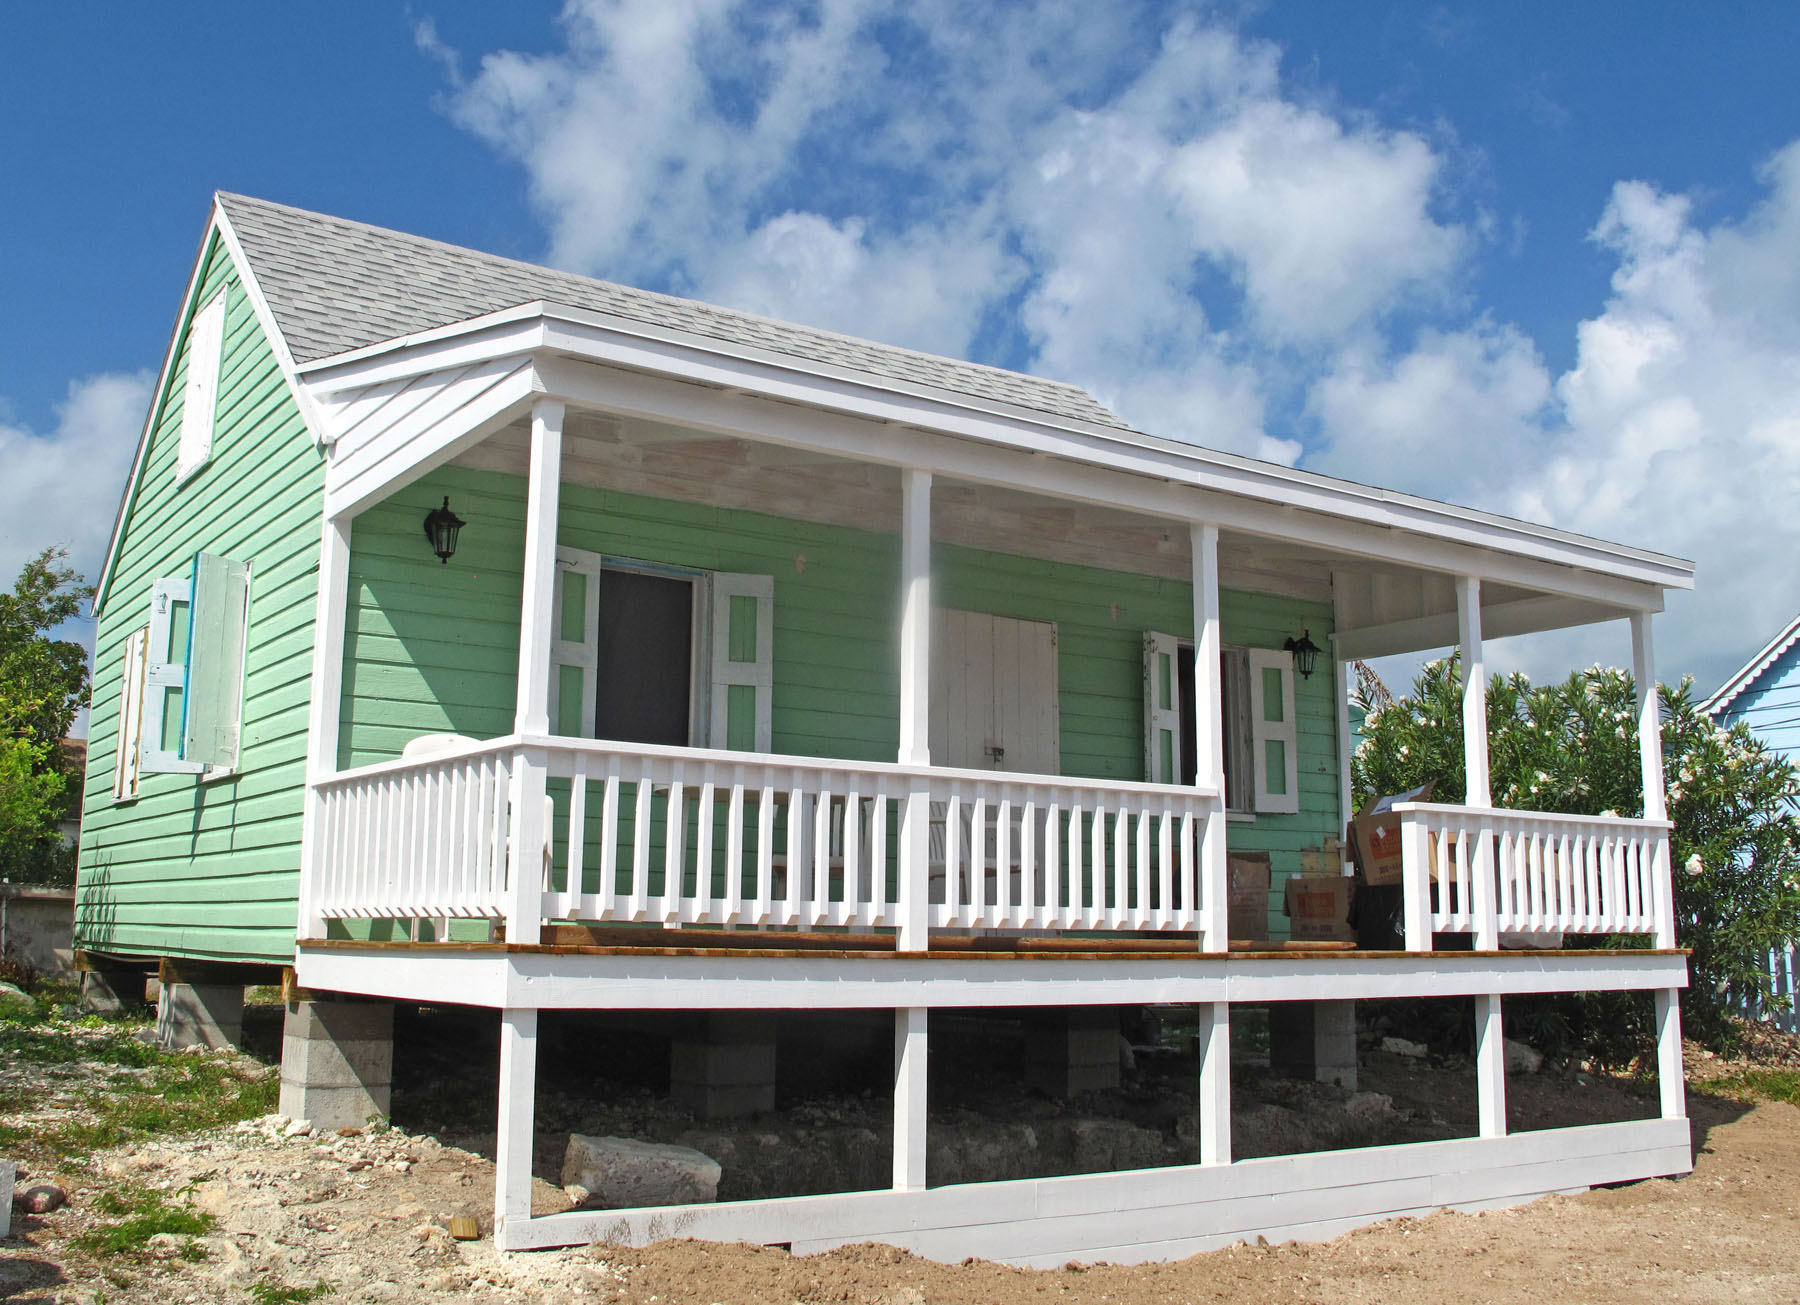 bahamas, green turtle cay, abaco, fish hooks cottage, porch